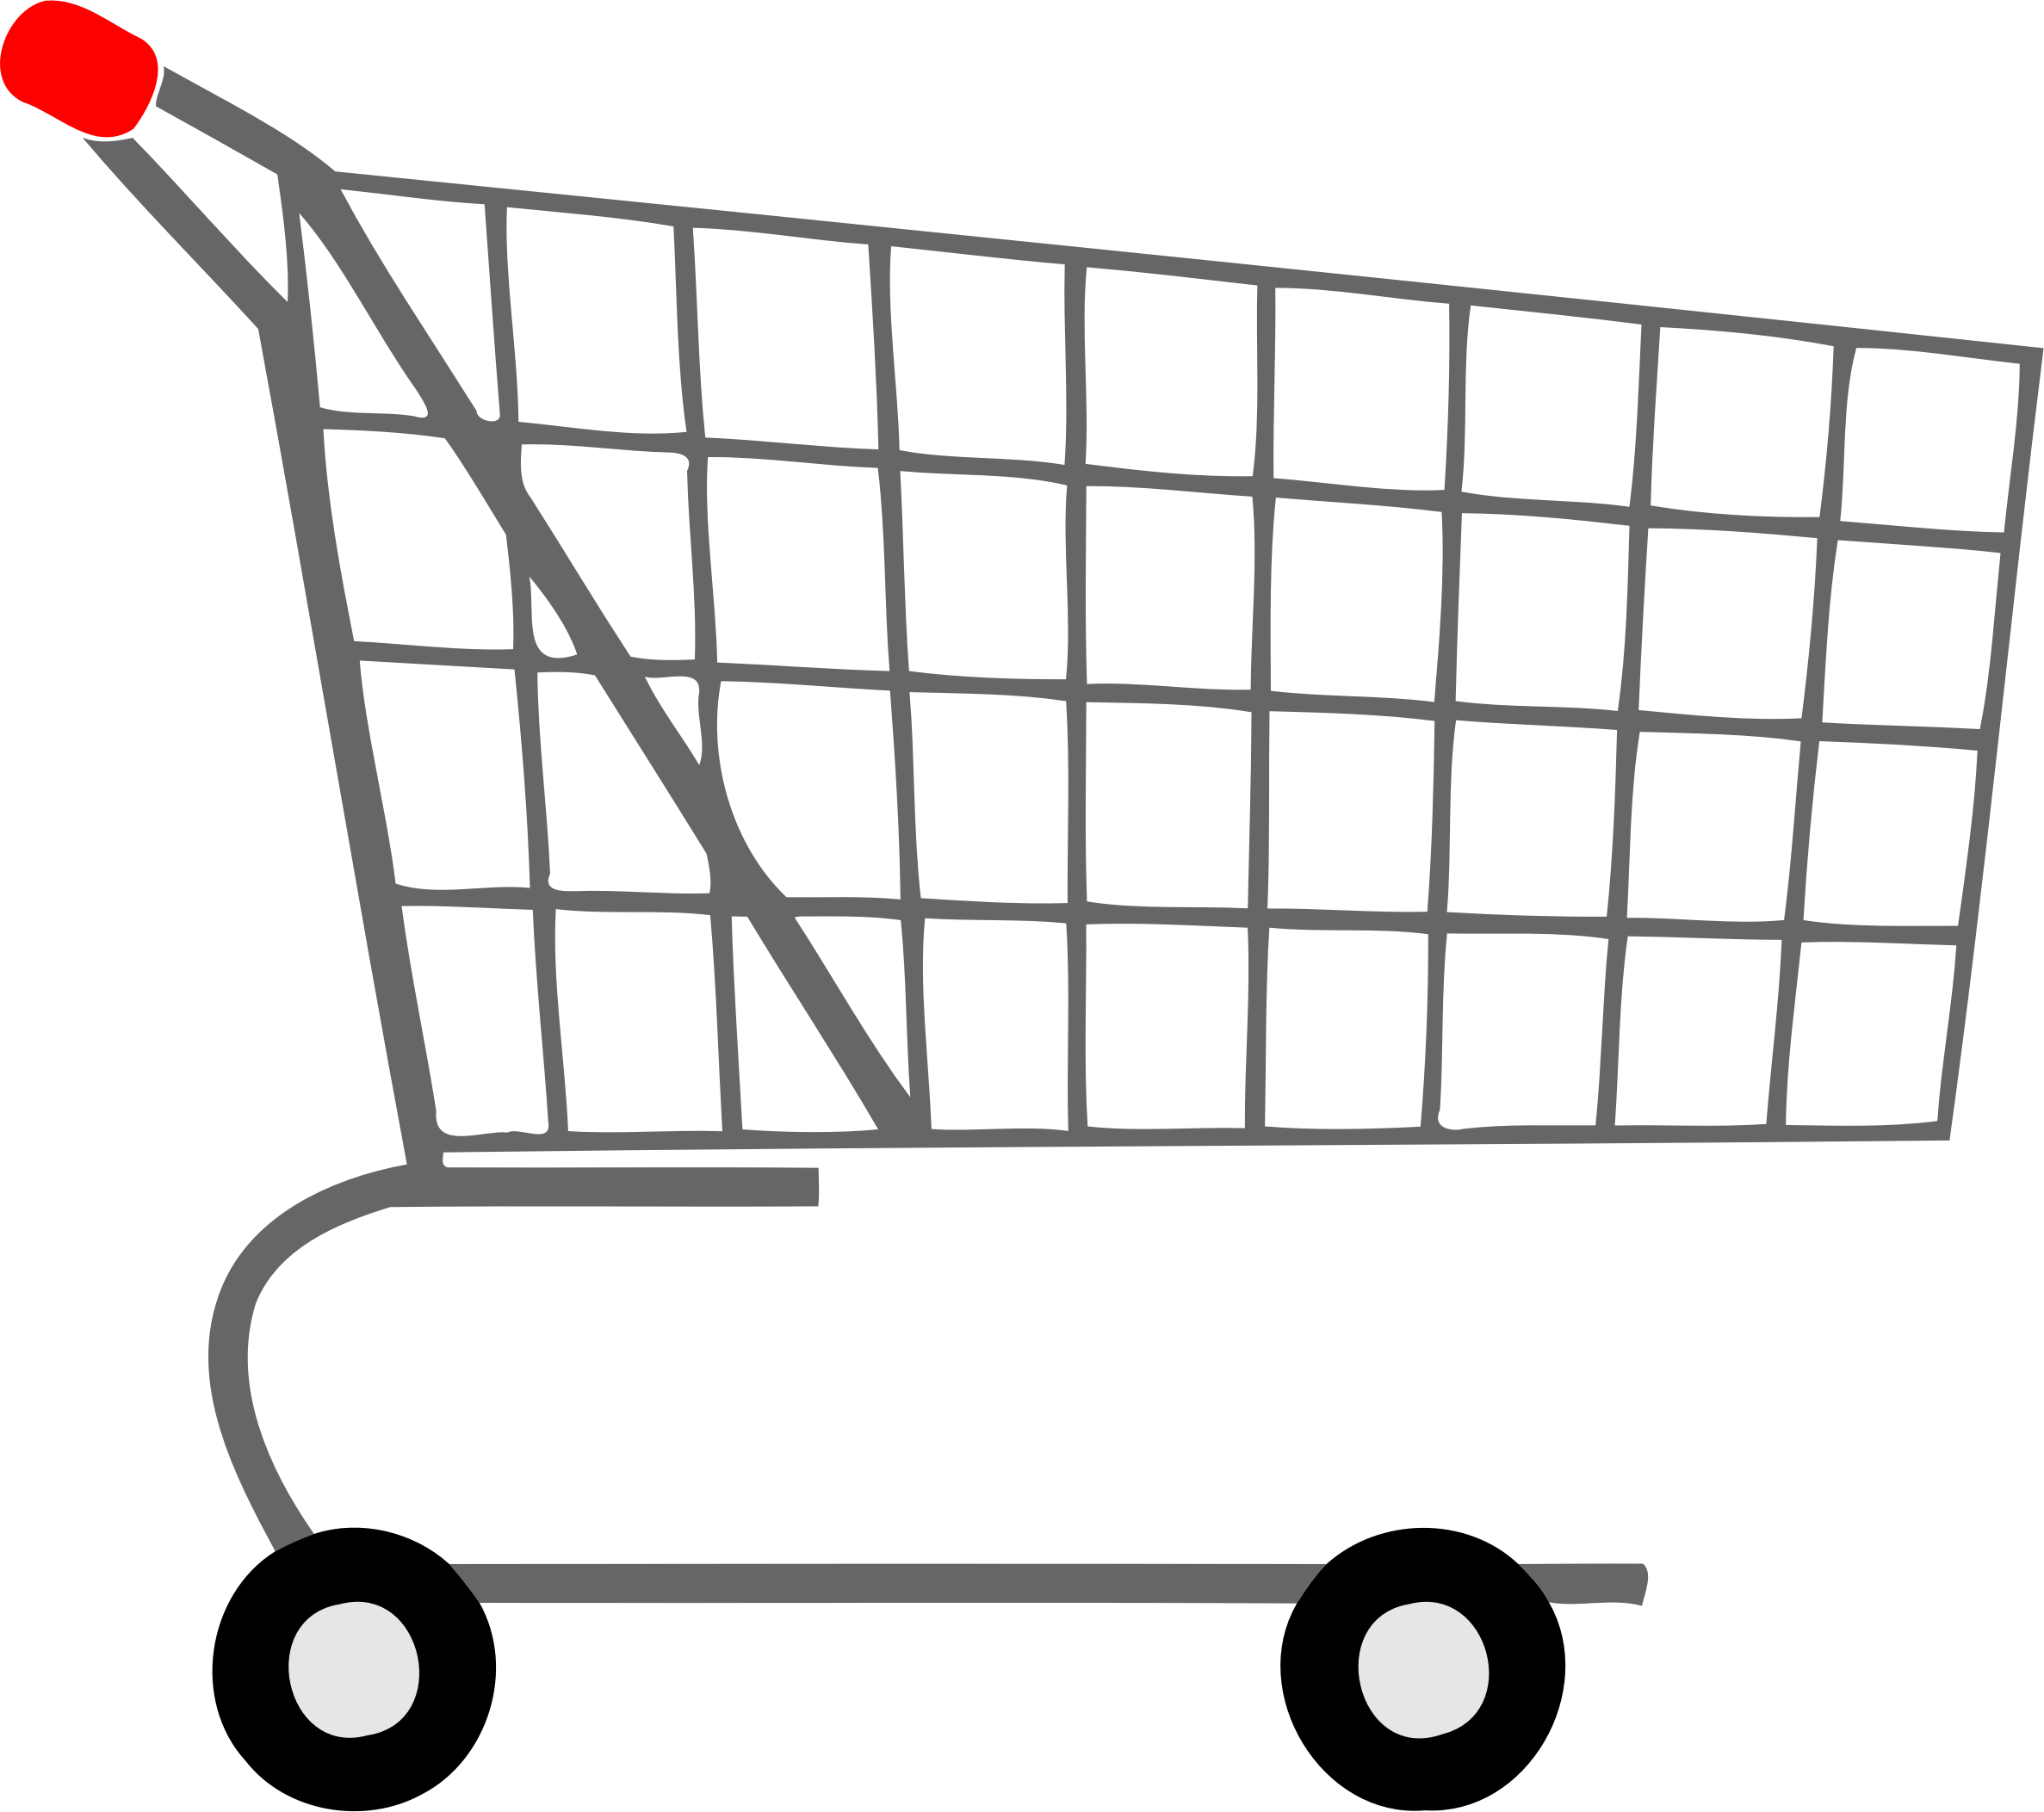 Full clipart full trolley. Shopping big image png